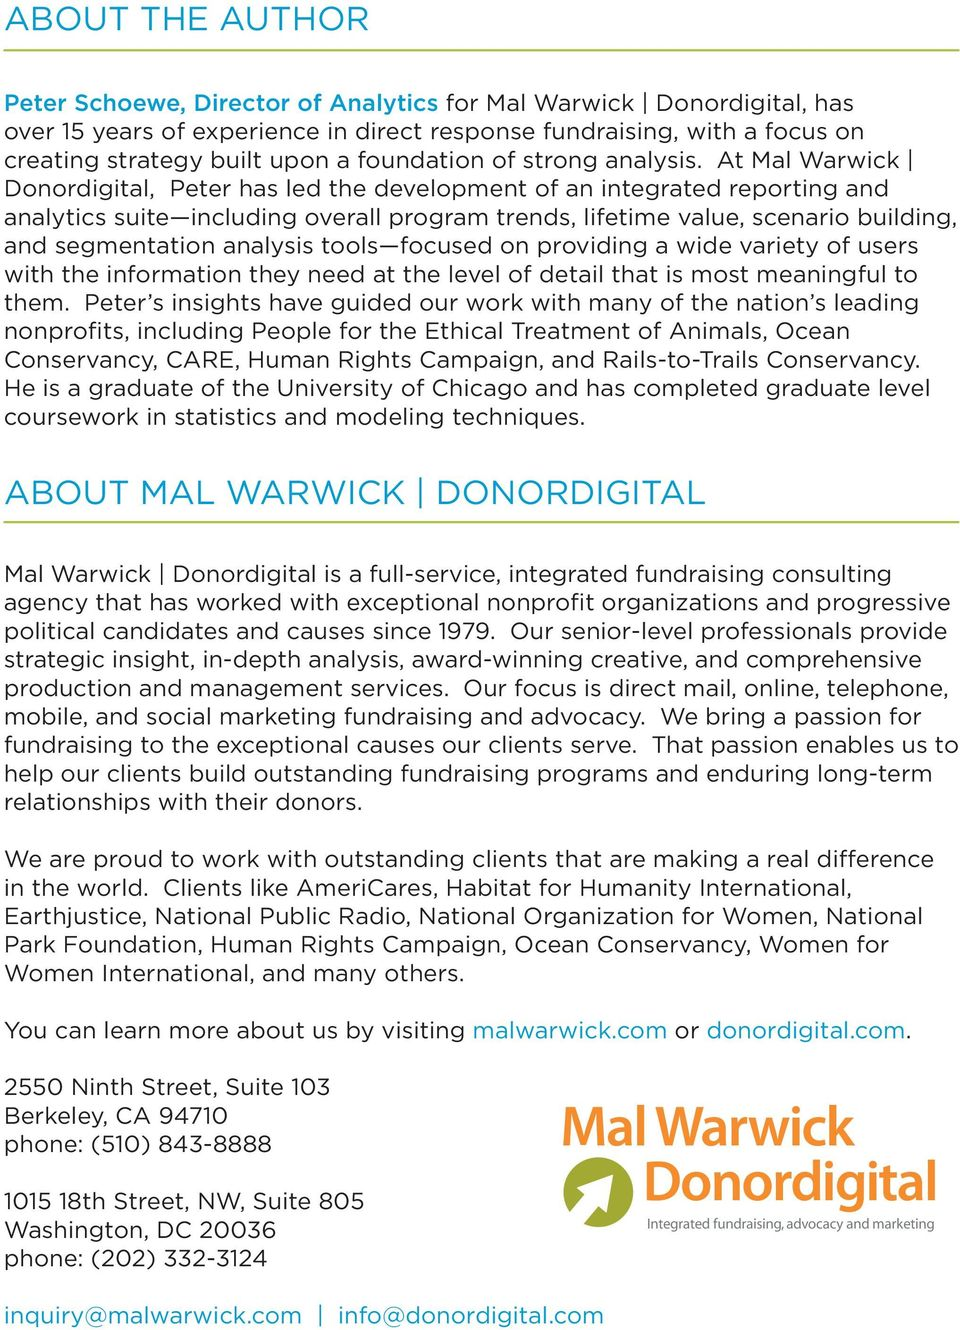 at Mal Warwick donordigital, peter has led the development of an integrated reporting and analytics suite including overall program trends, lifetime value, scenario building, and segmentation